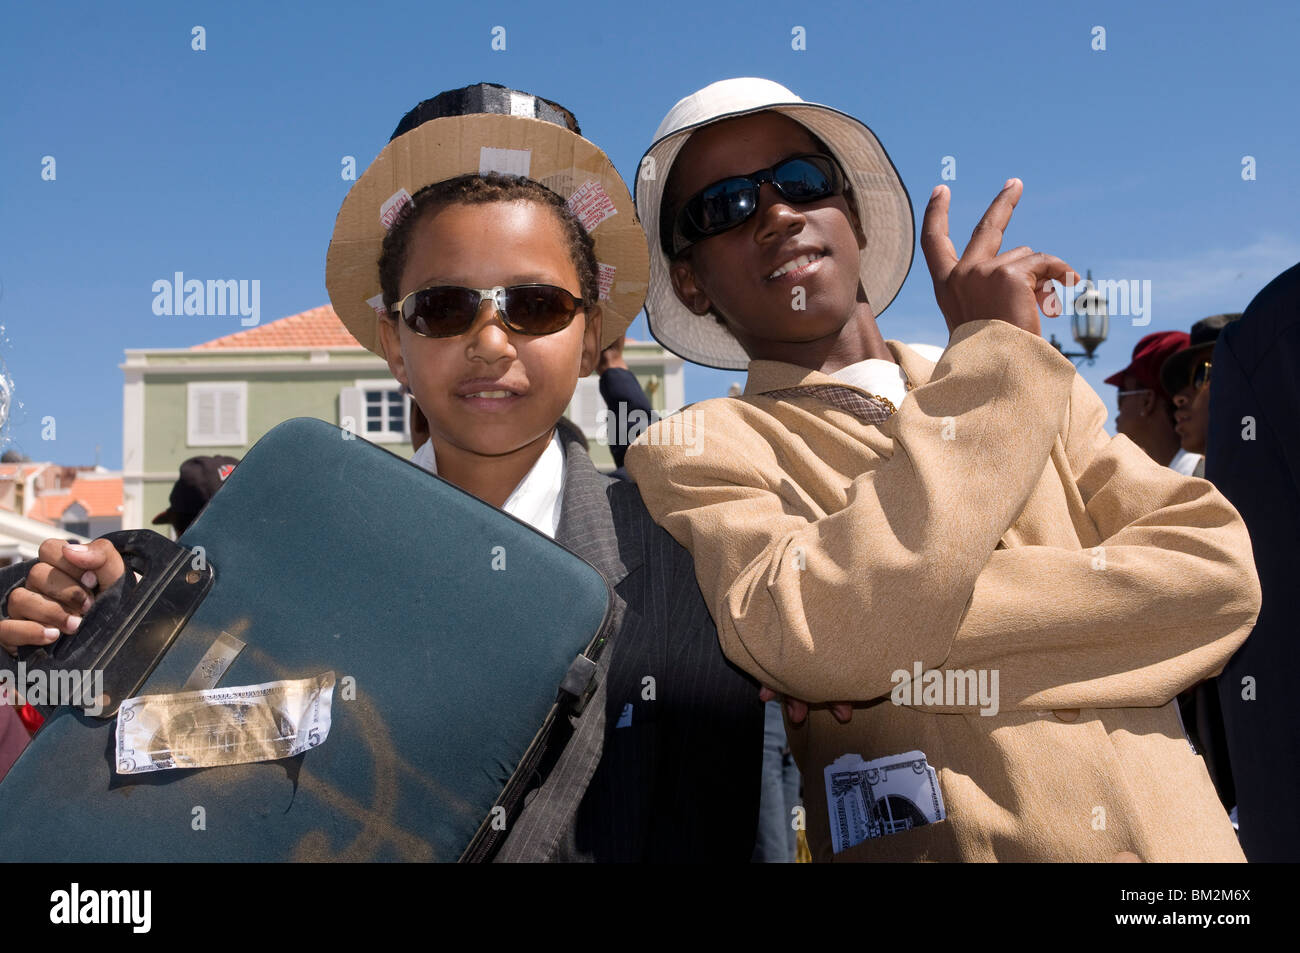 Young men dressed as businesspeople during Carnival, Mindelo, Sao Vicente, Cape Verde - Stock Image